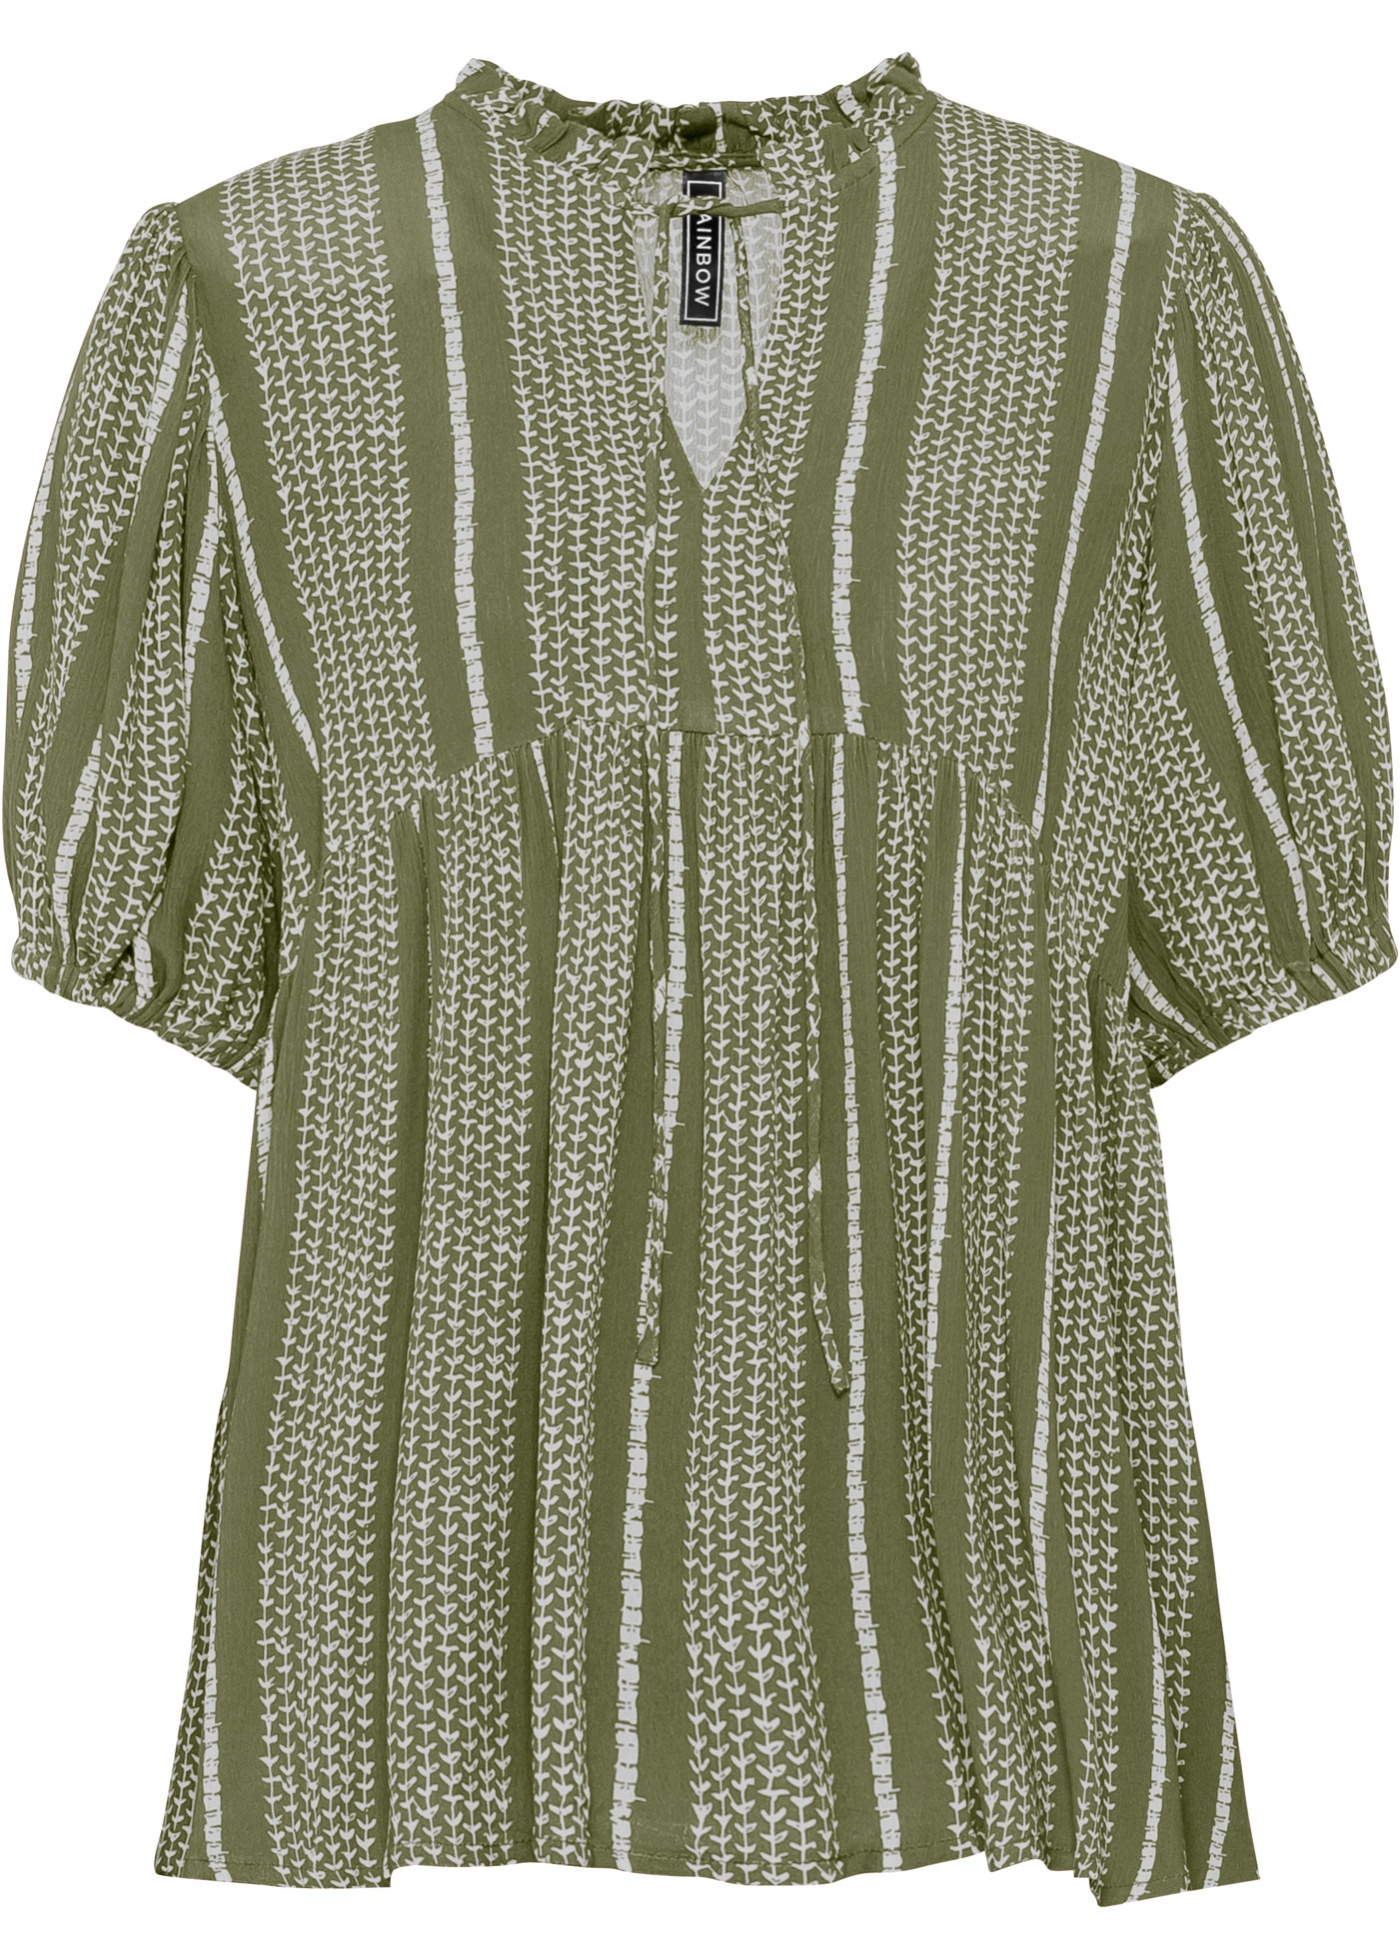 Blouse manches courtes : MUST-HAVE